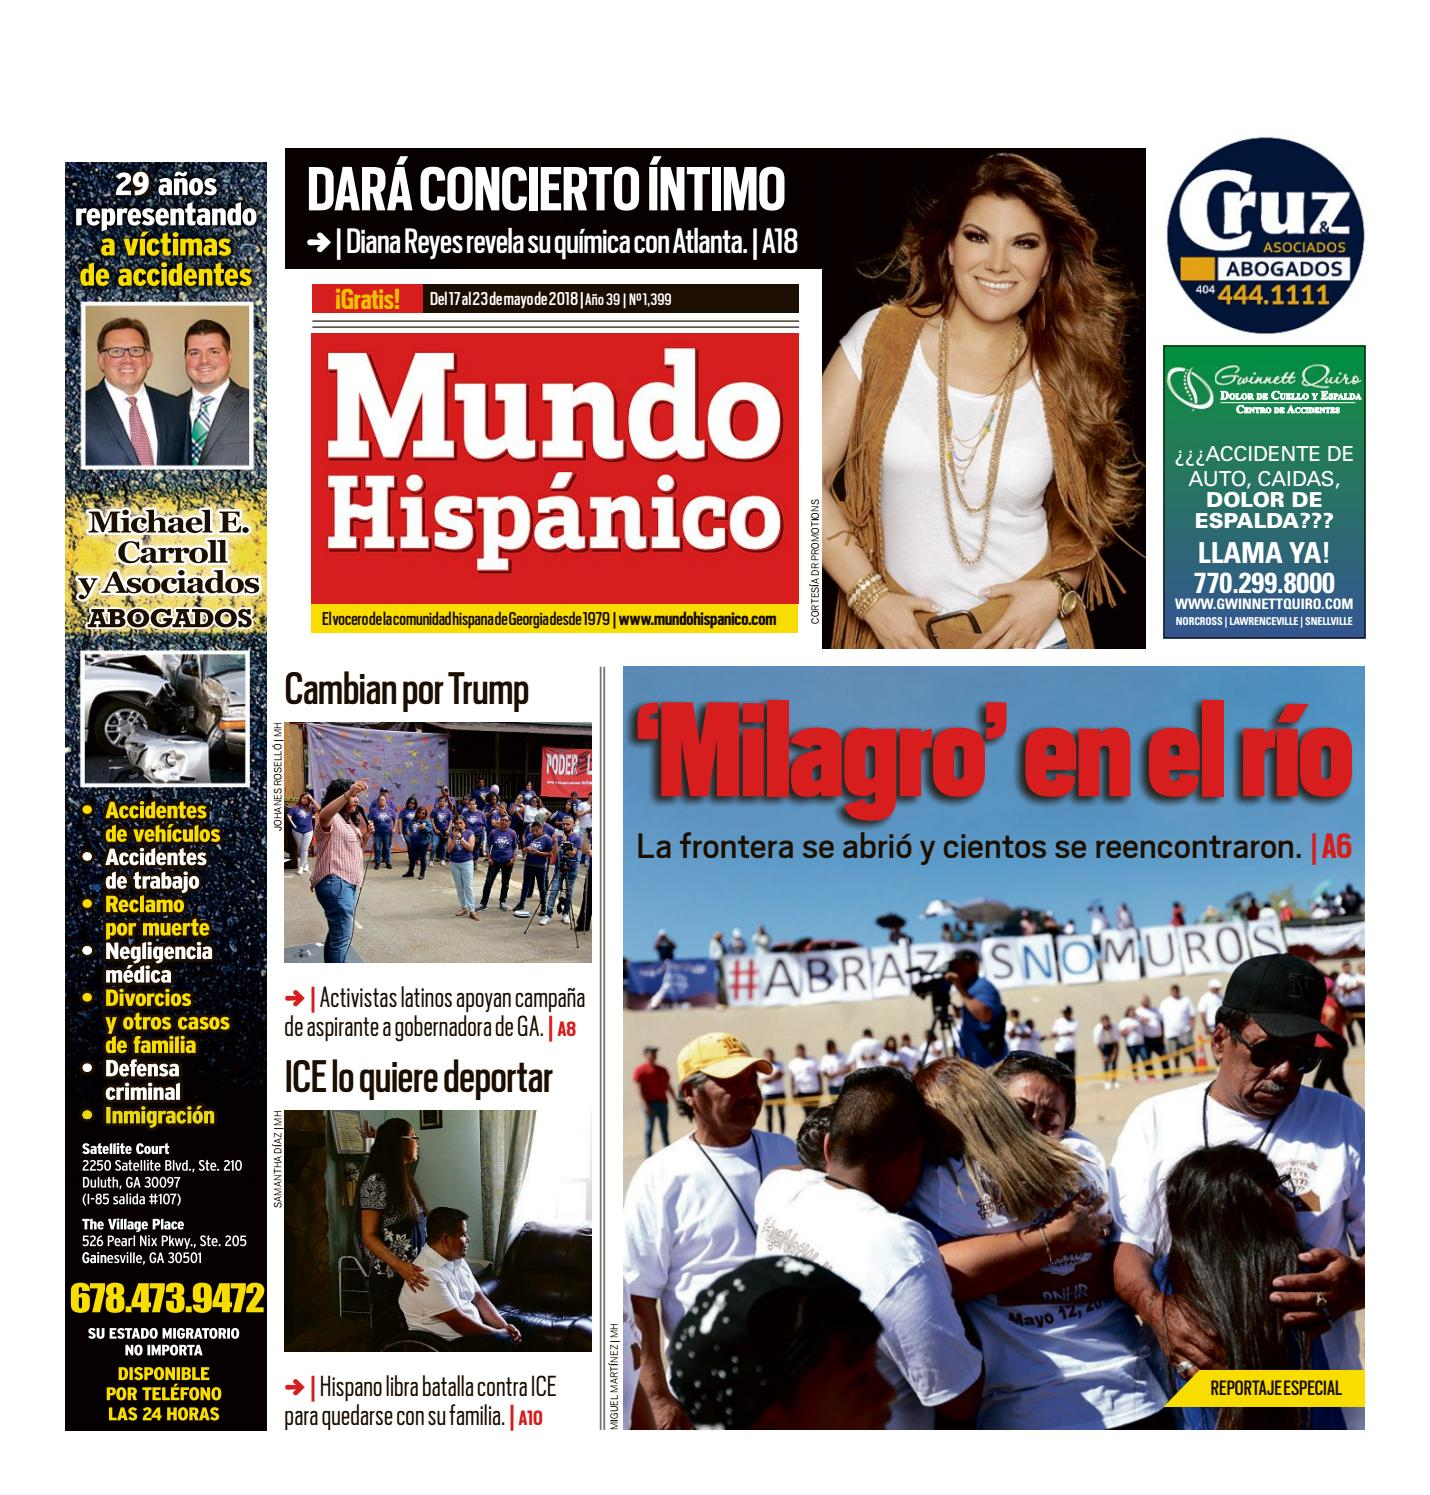 Milagro\' en el río by MUNDO HISPANICO - issuu